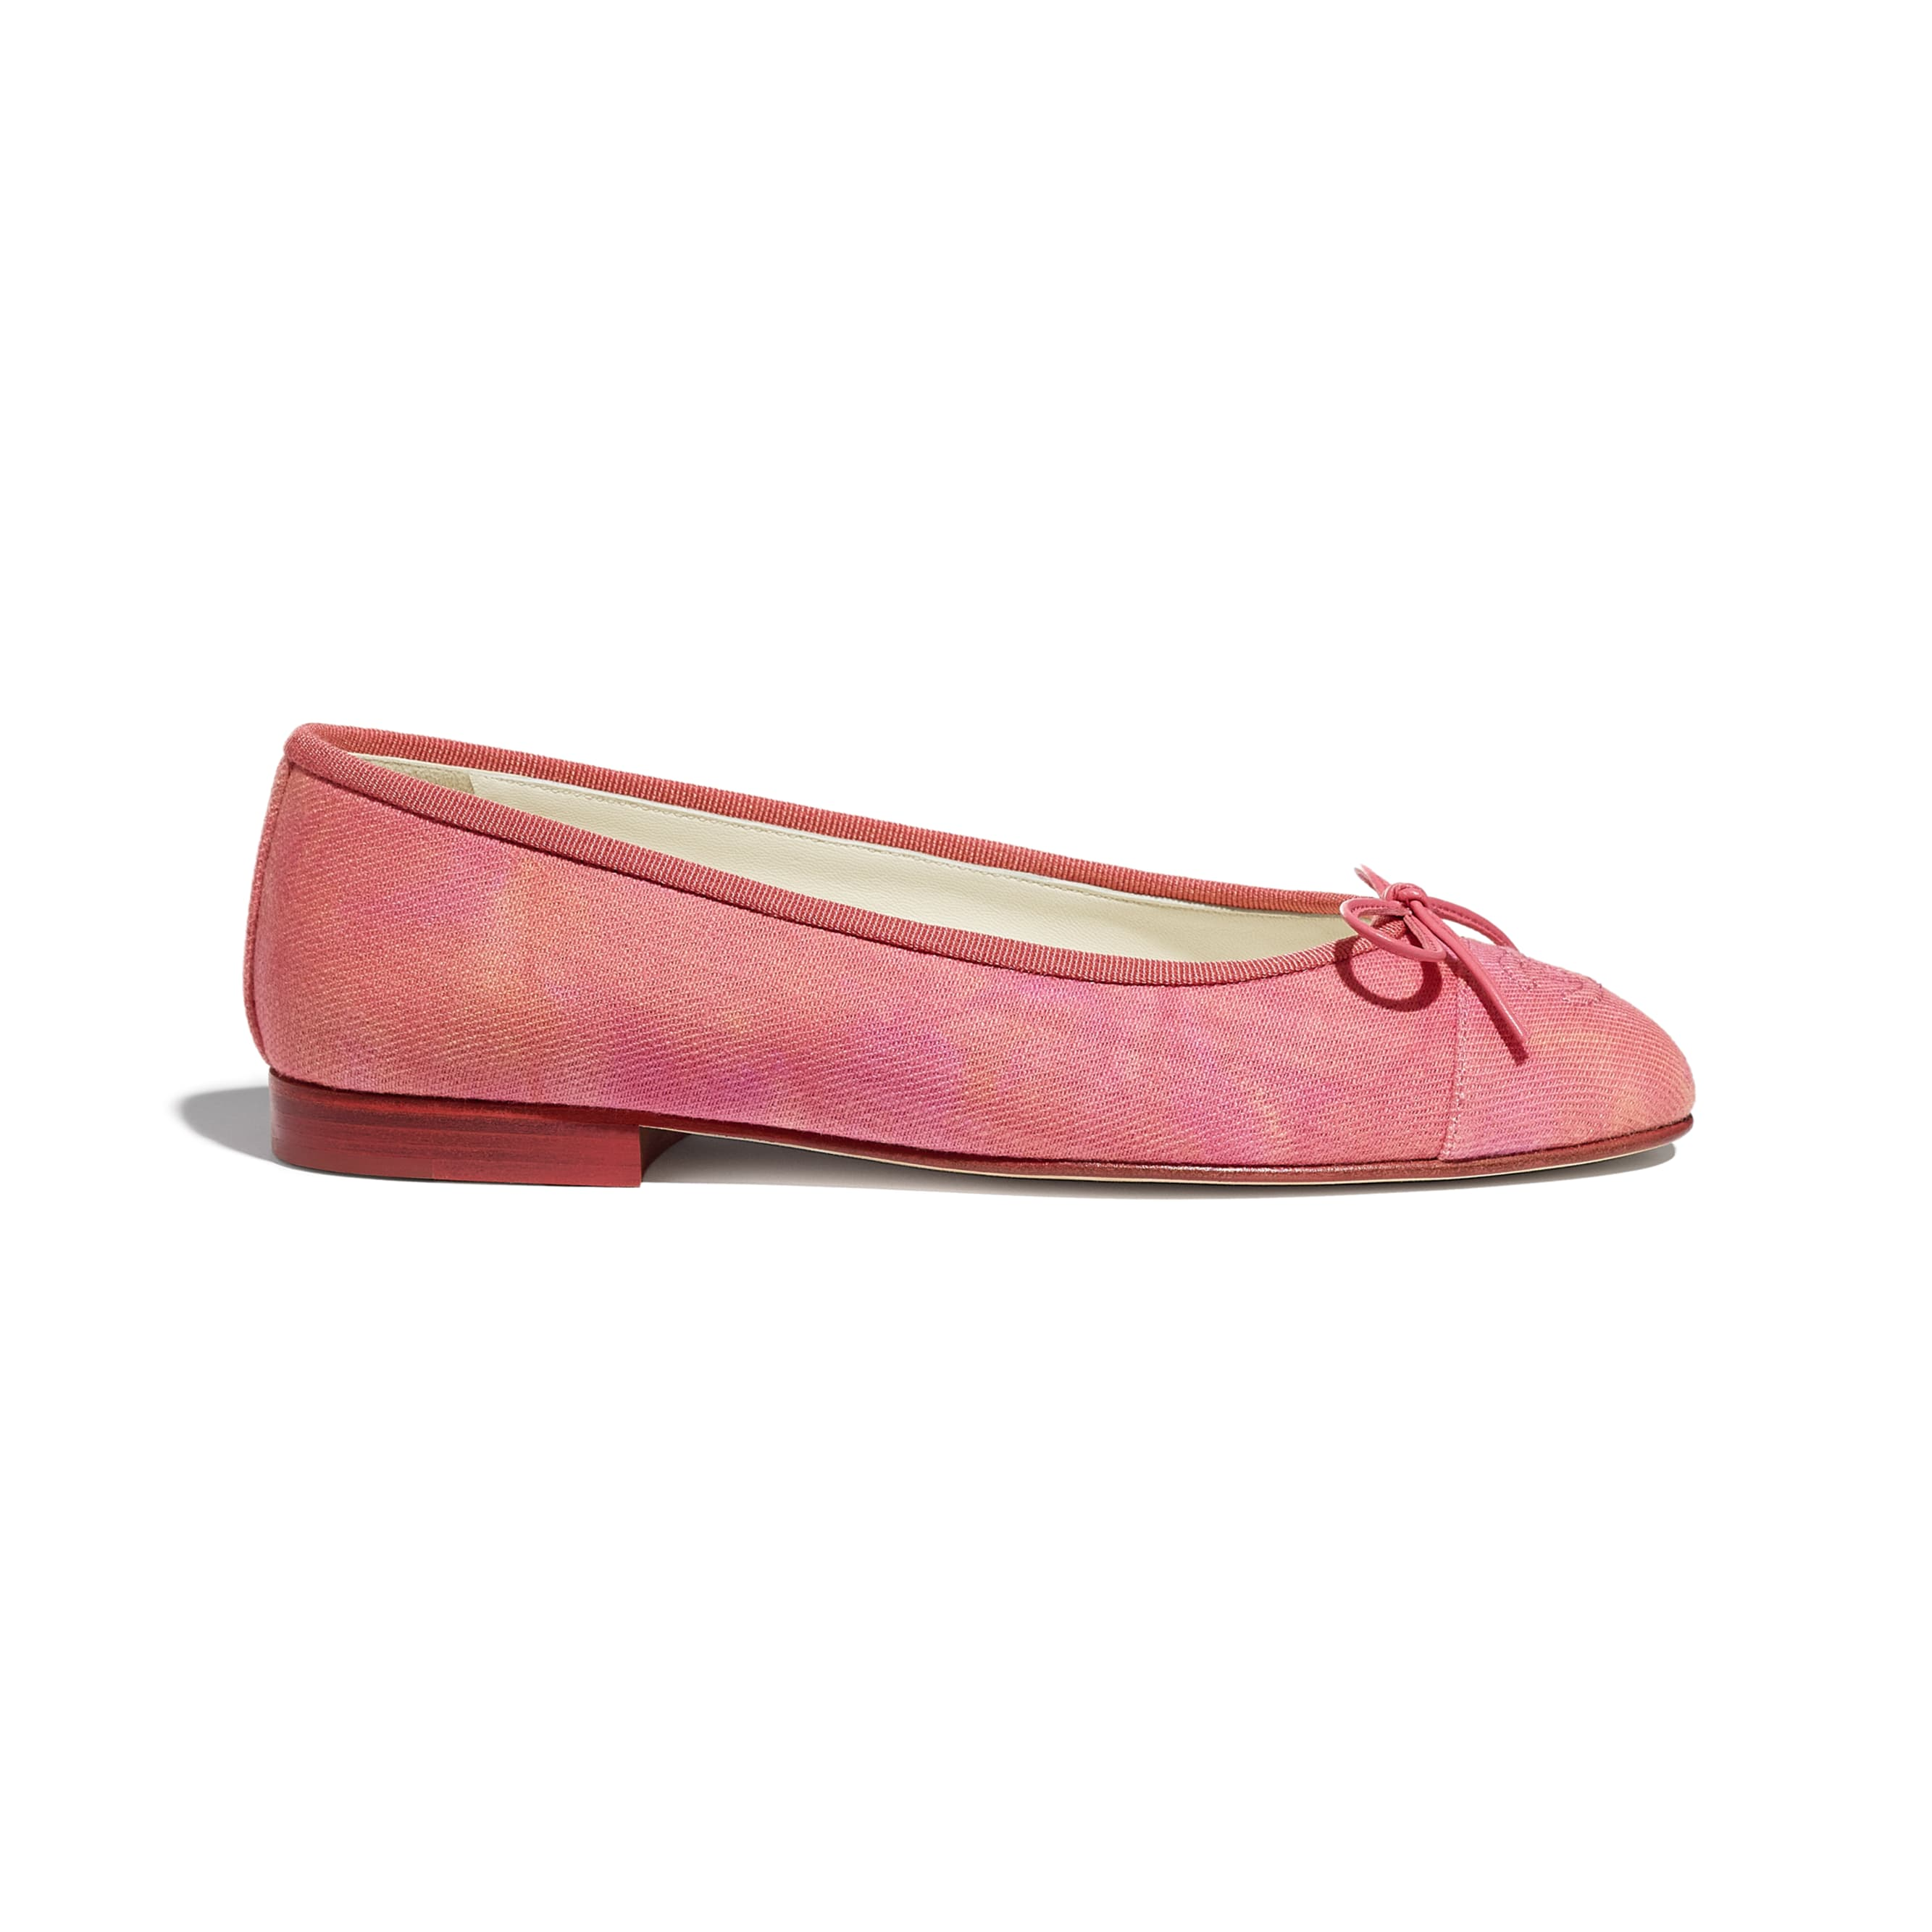 Flats - Coral, Pink & Orange - Fabric - CHANEL - Default view - see standard sized version